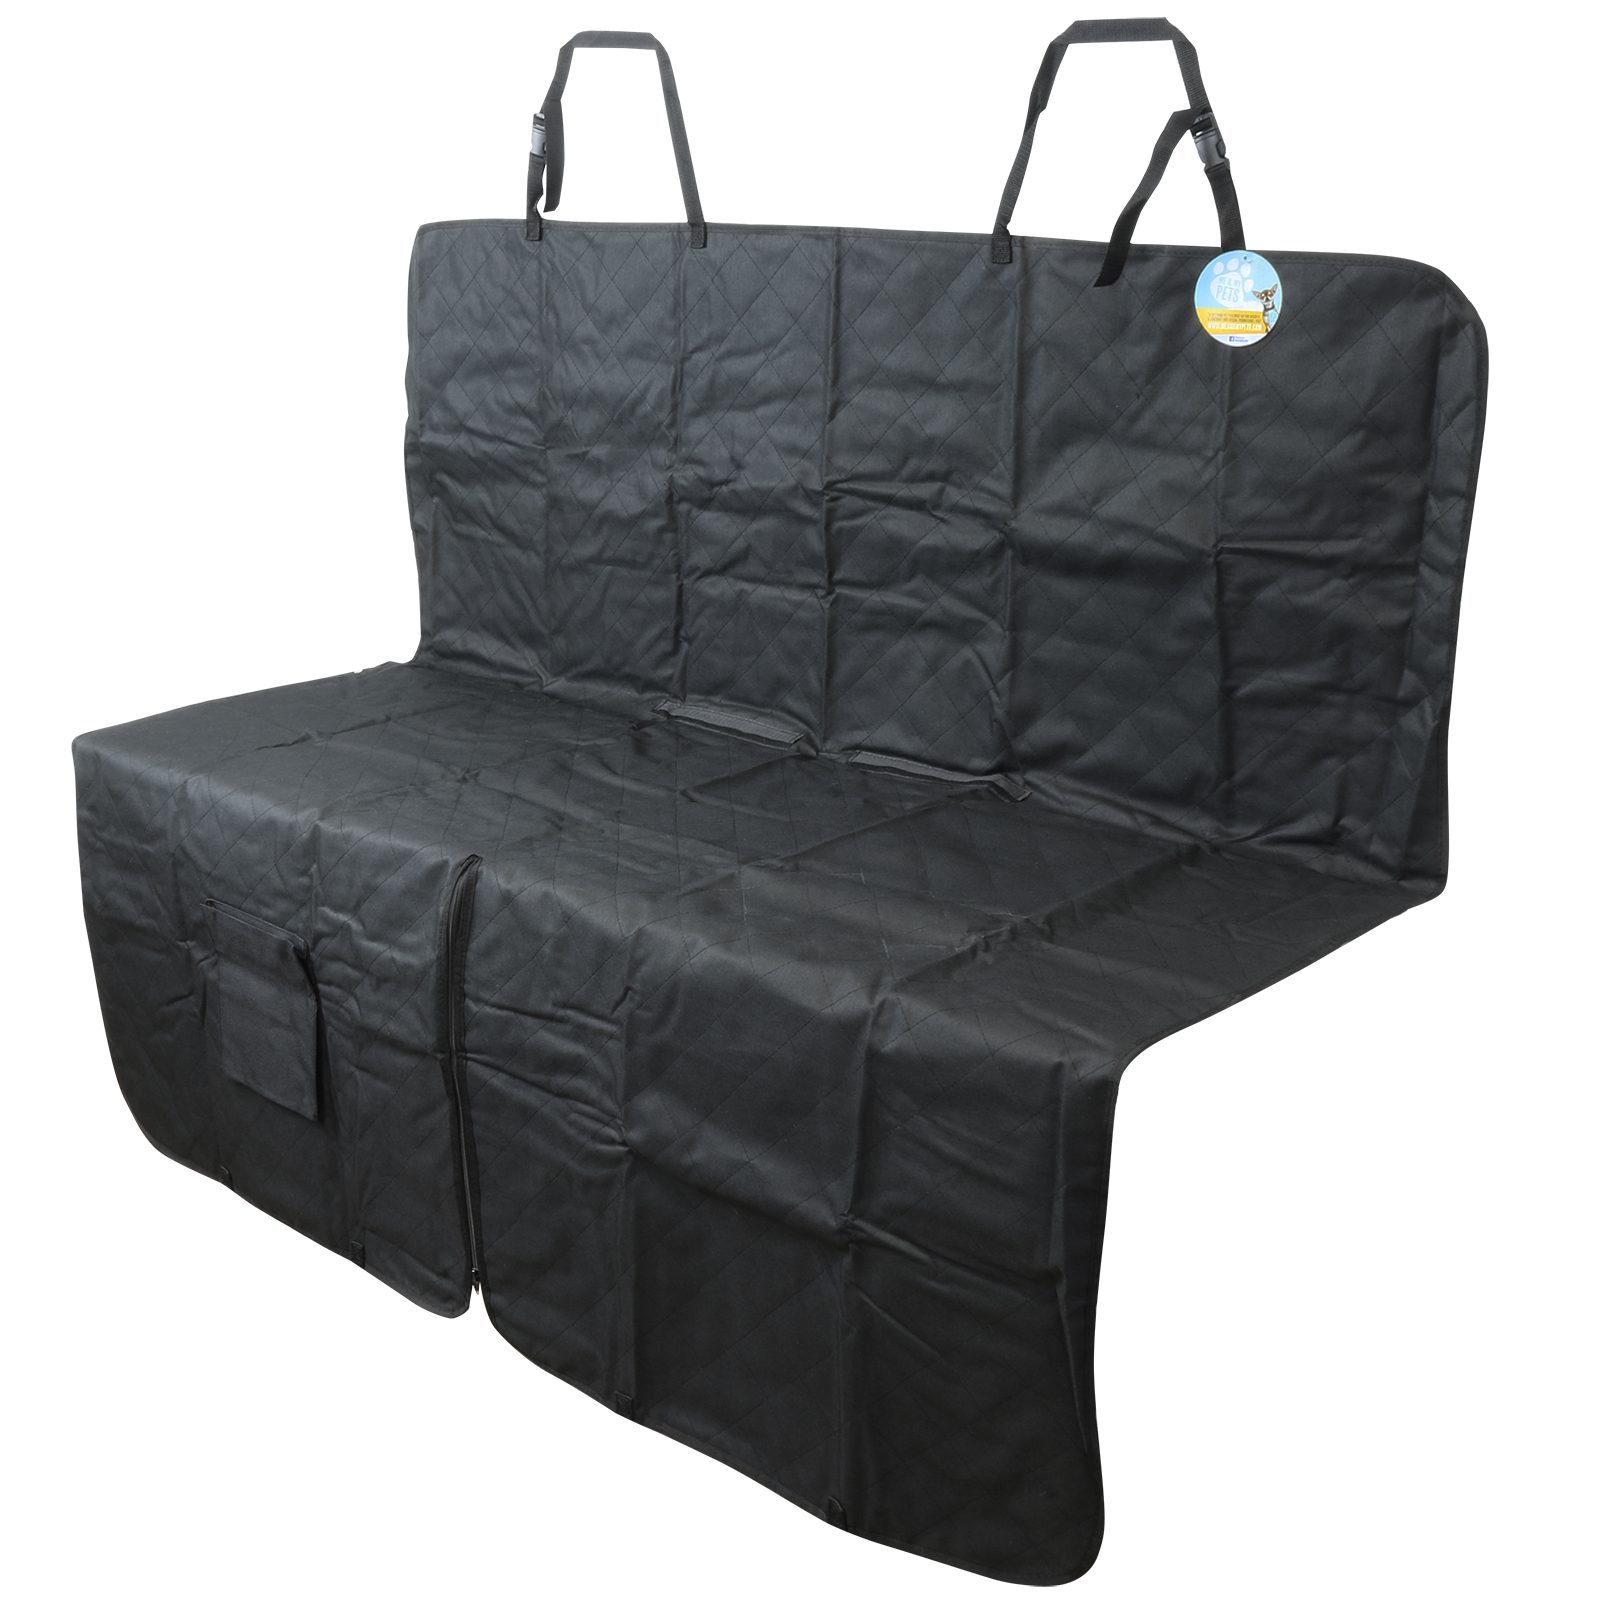 me my black quilted rear car seat liner protector hammock pet dog cover mat ebay. Black Bedroom Furniture Sets. Home Design Ideas